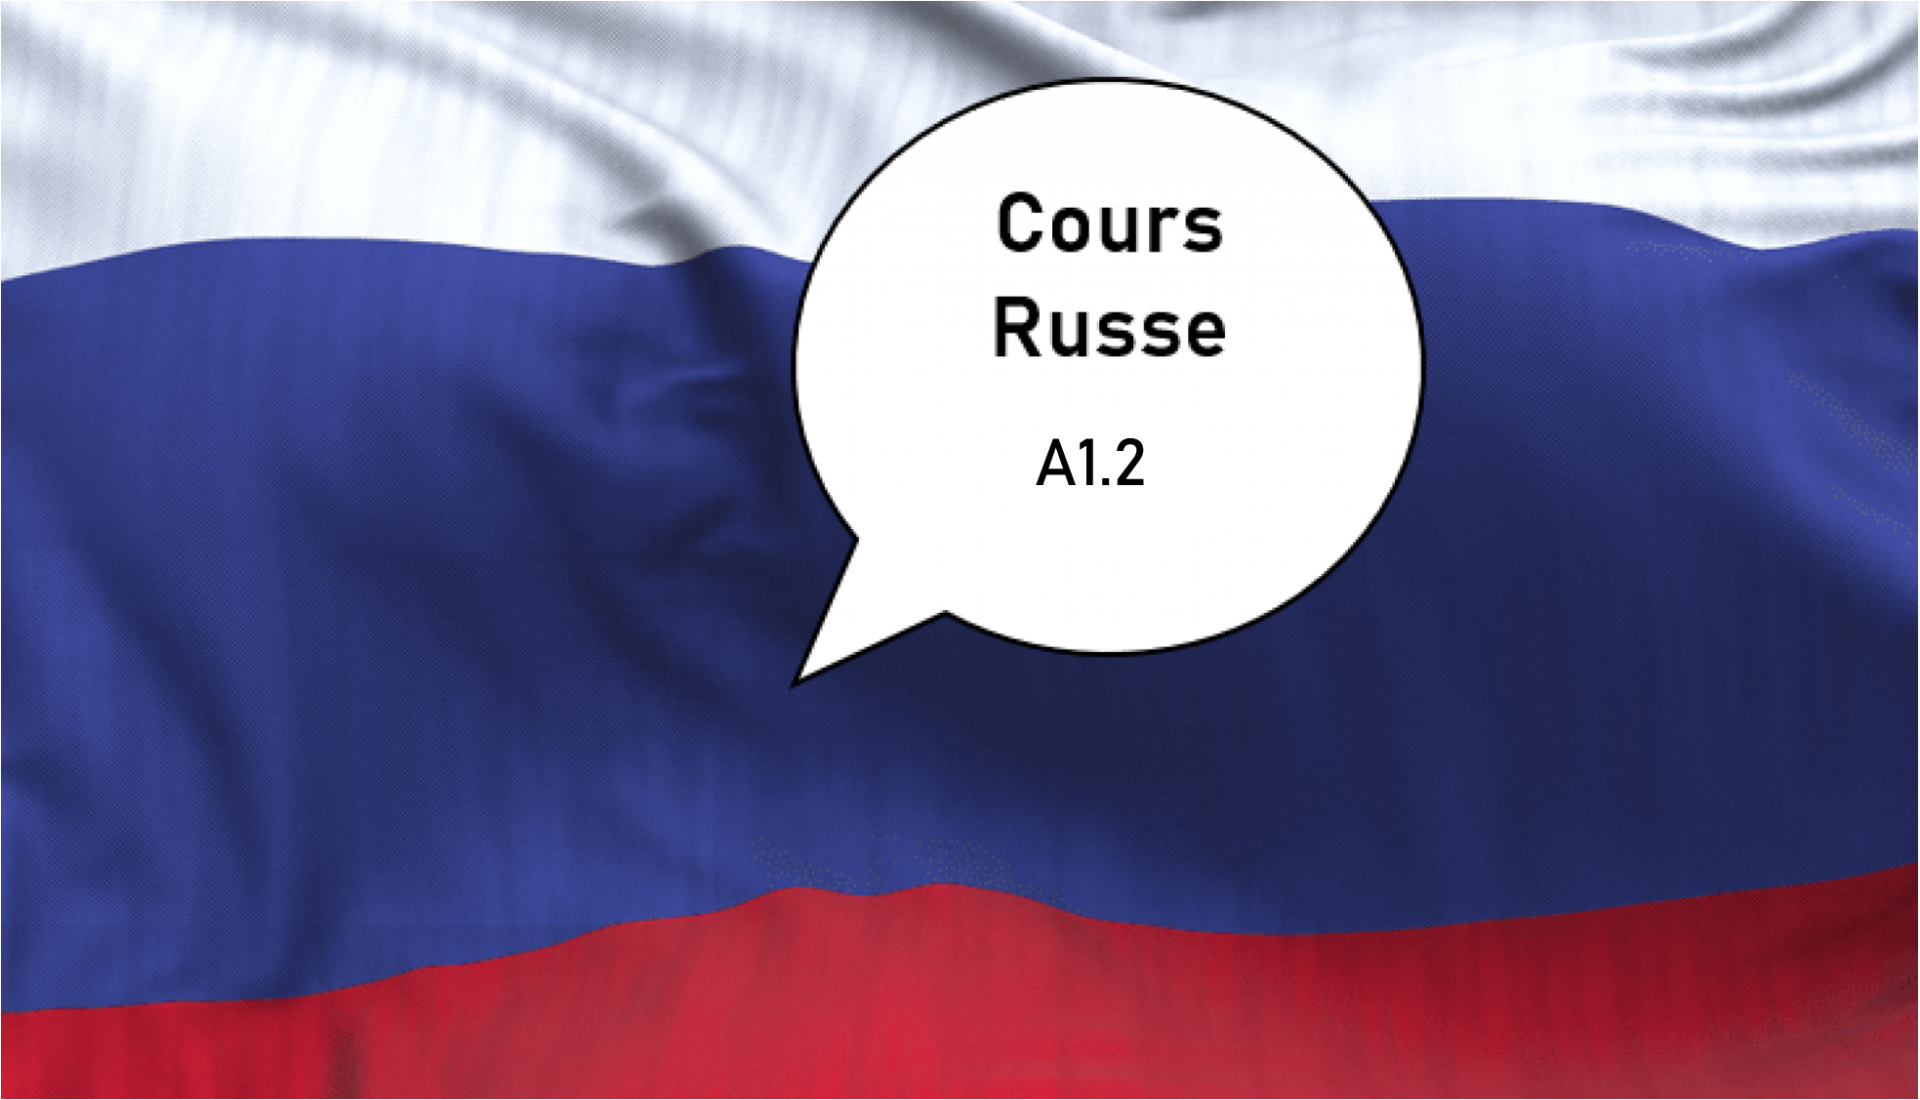 Russe A1.2